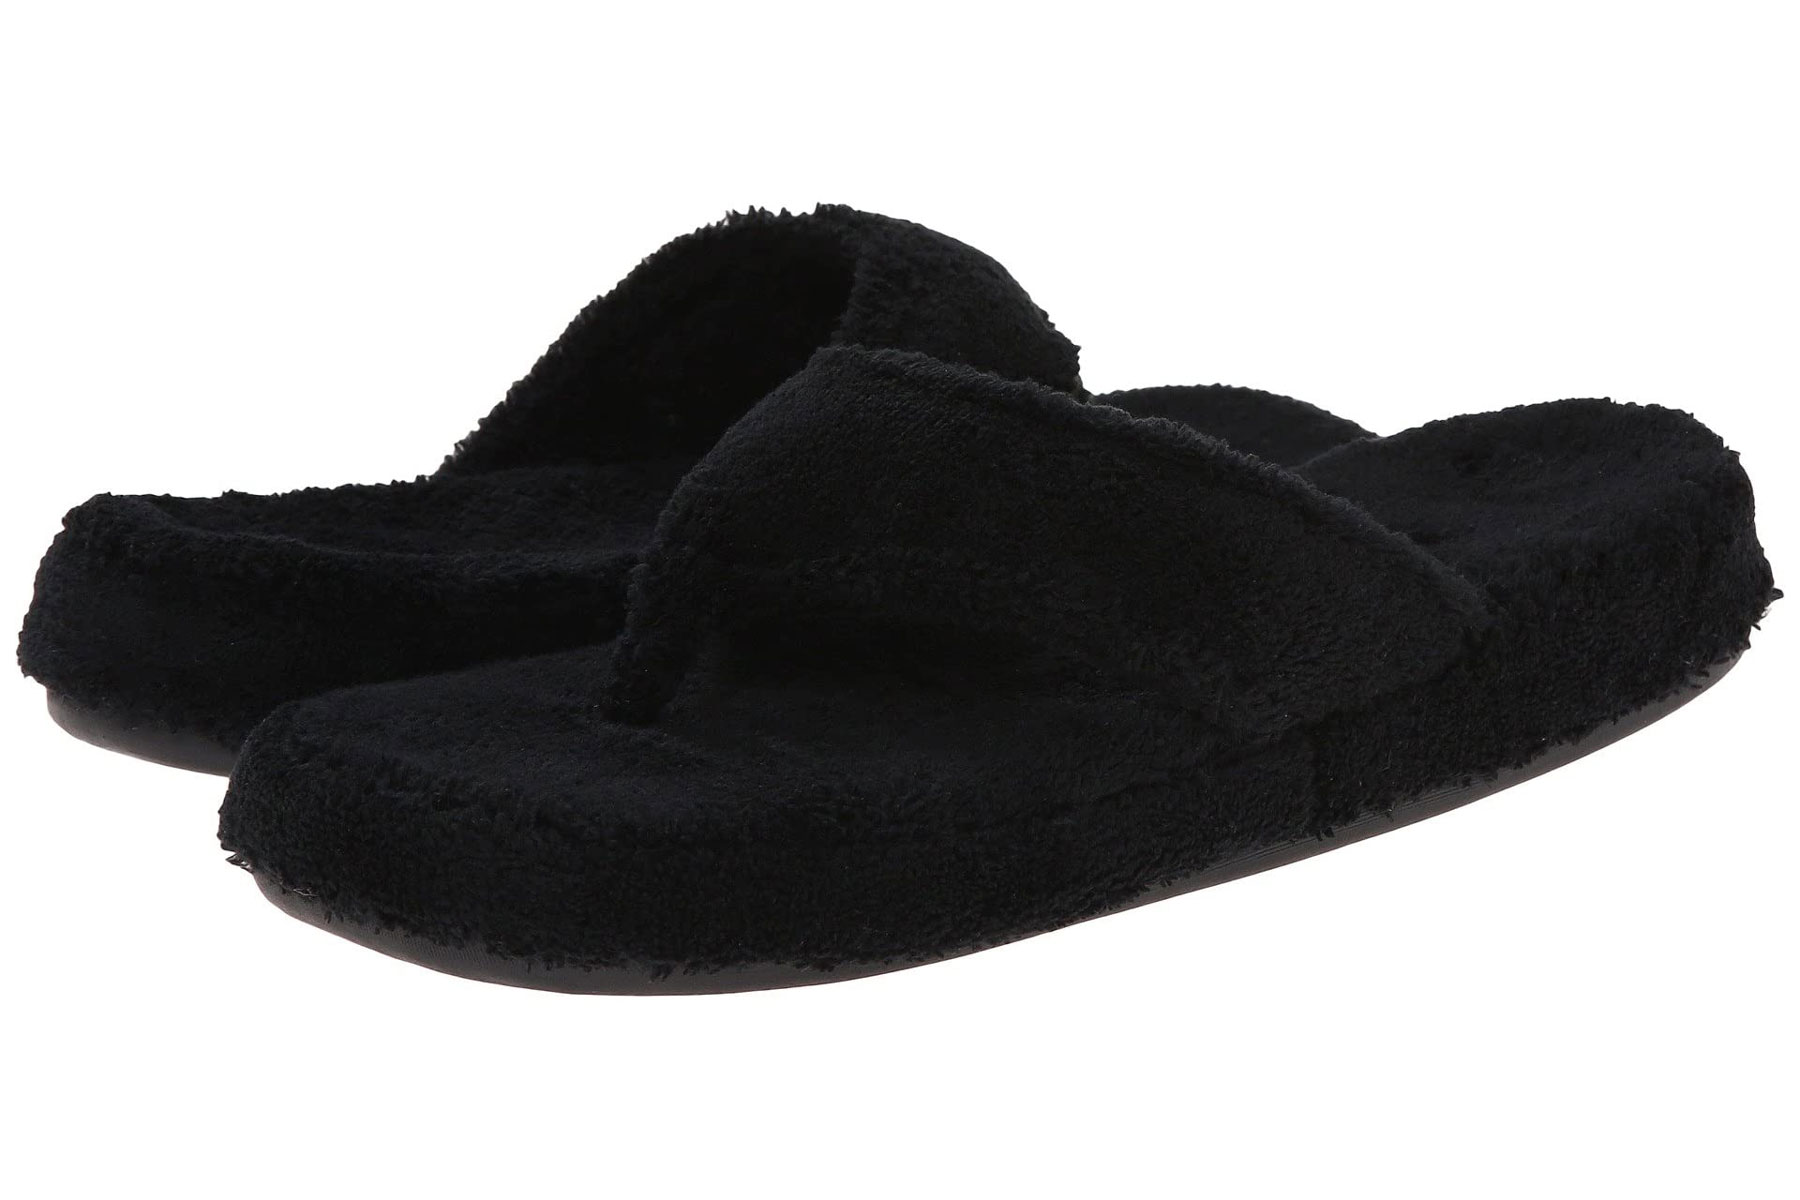 Black plush slipper sandal